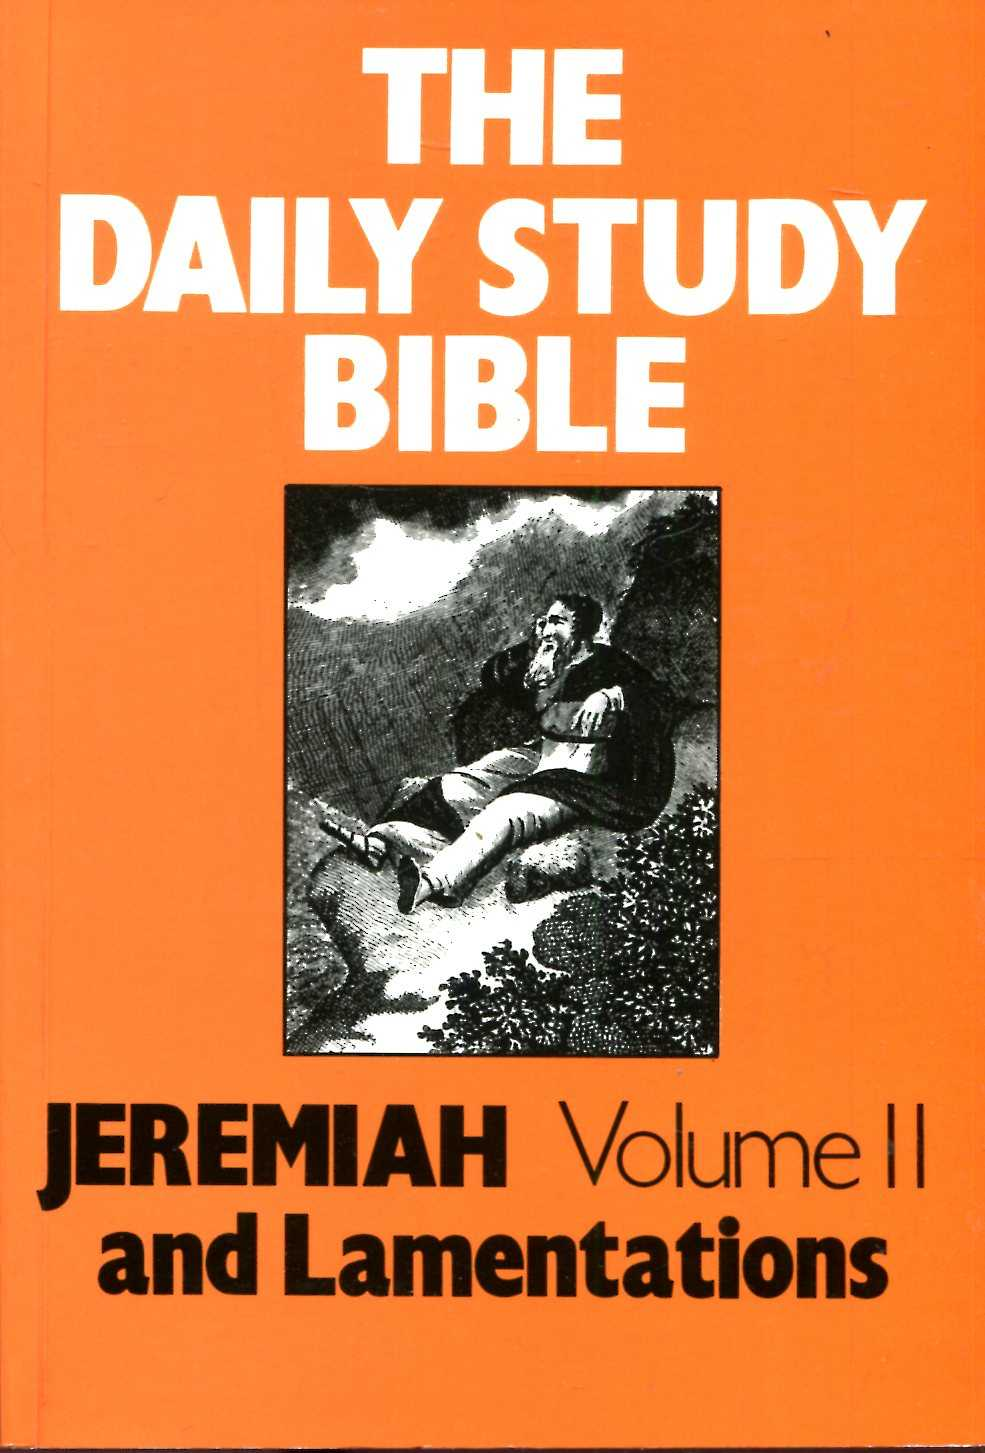 Image for Jeremiah volume II and Lamentations : (Daily Study Bible)